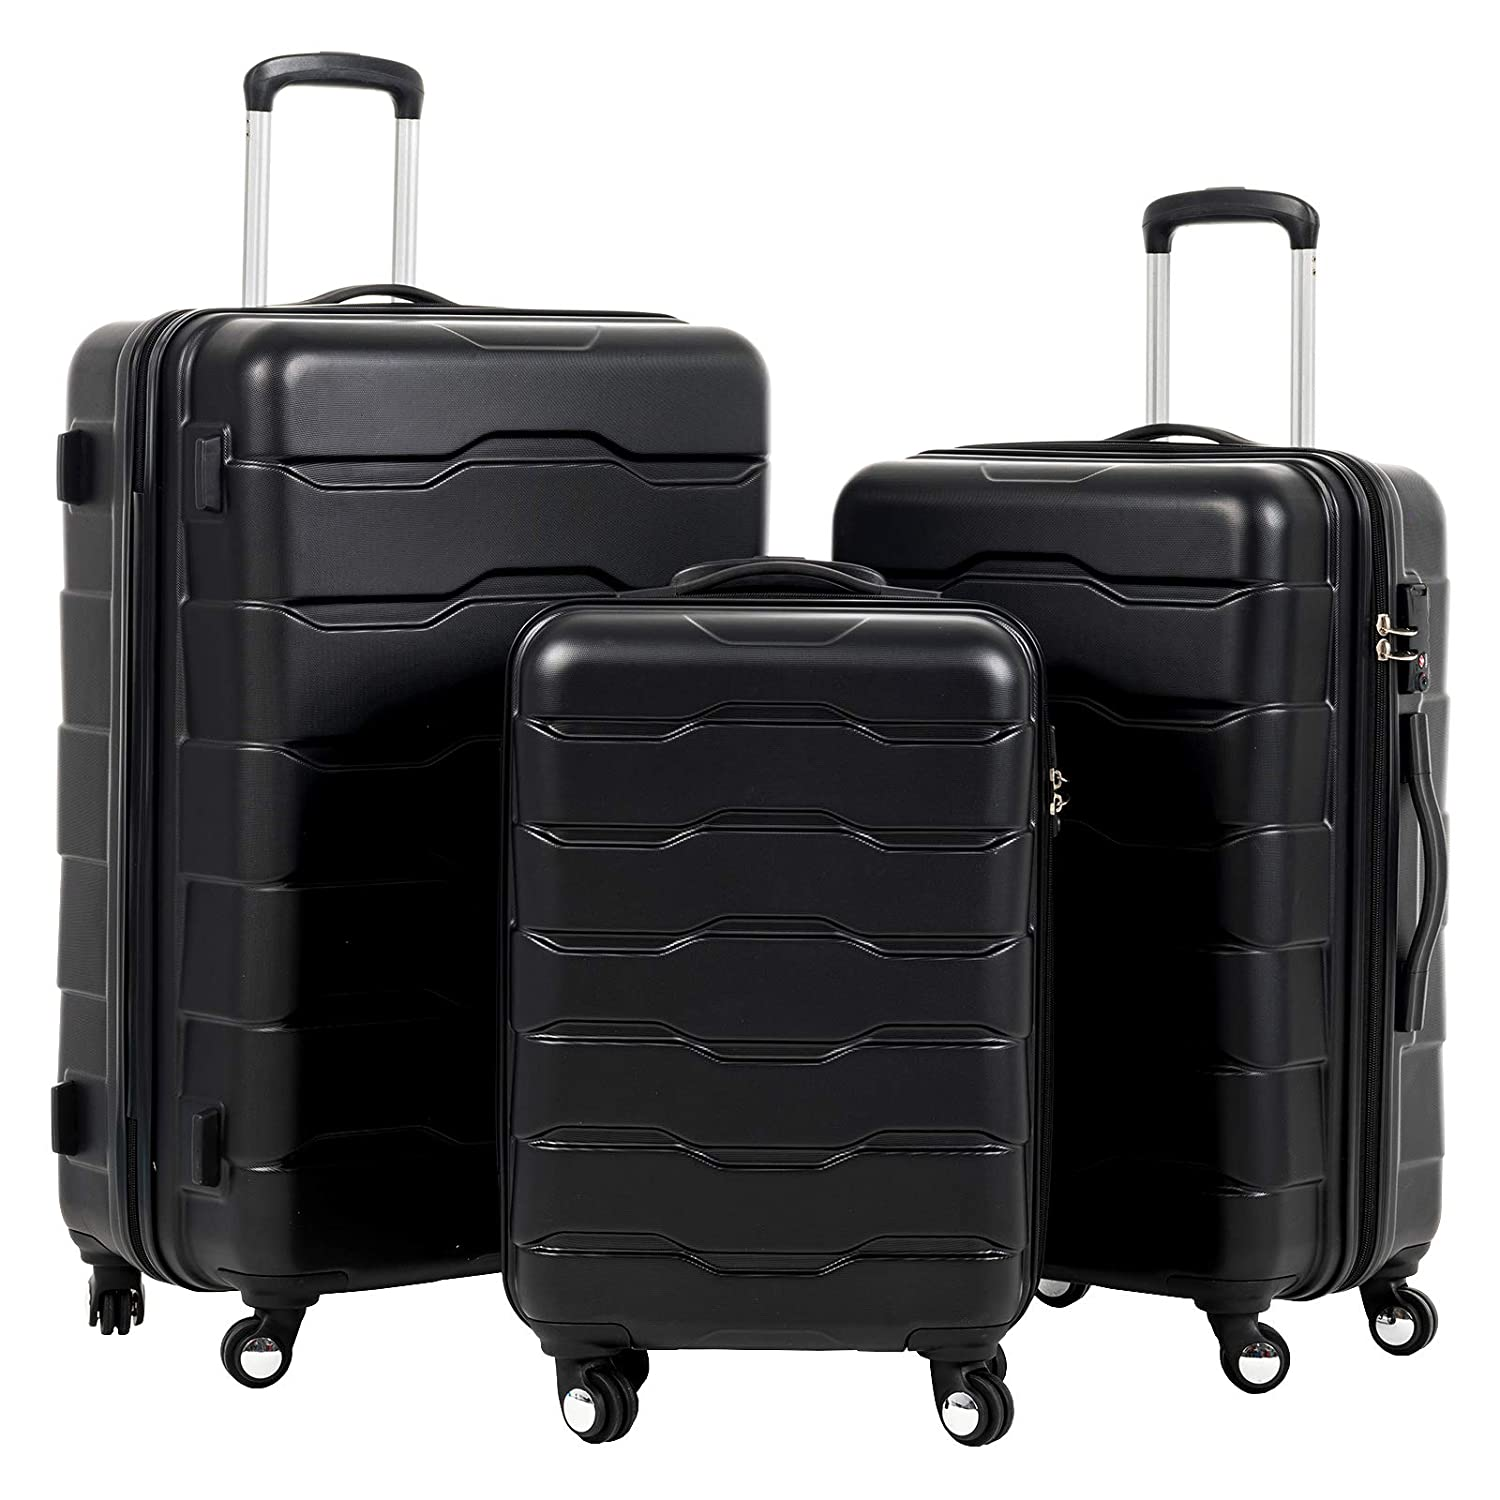 cb738a22f Amazon.com: Murtisol Luggage Sets 3 Piece with TSA Lock Spinner,Trolley  Cases Hardside,Black Suitcases 20